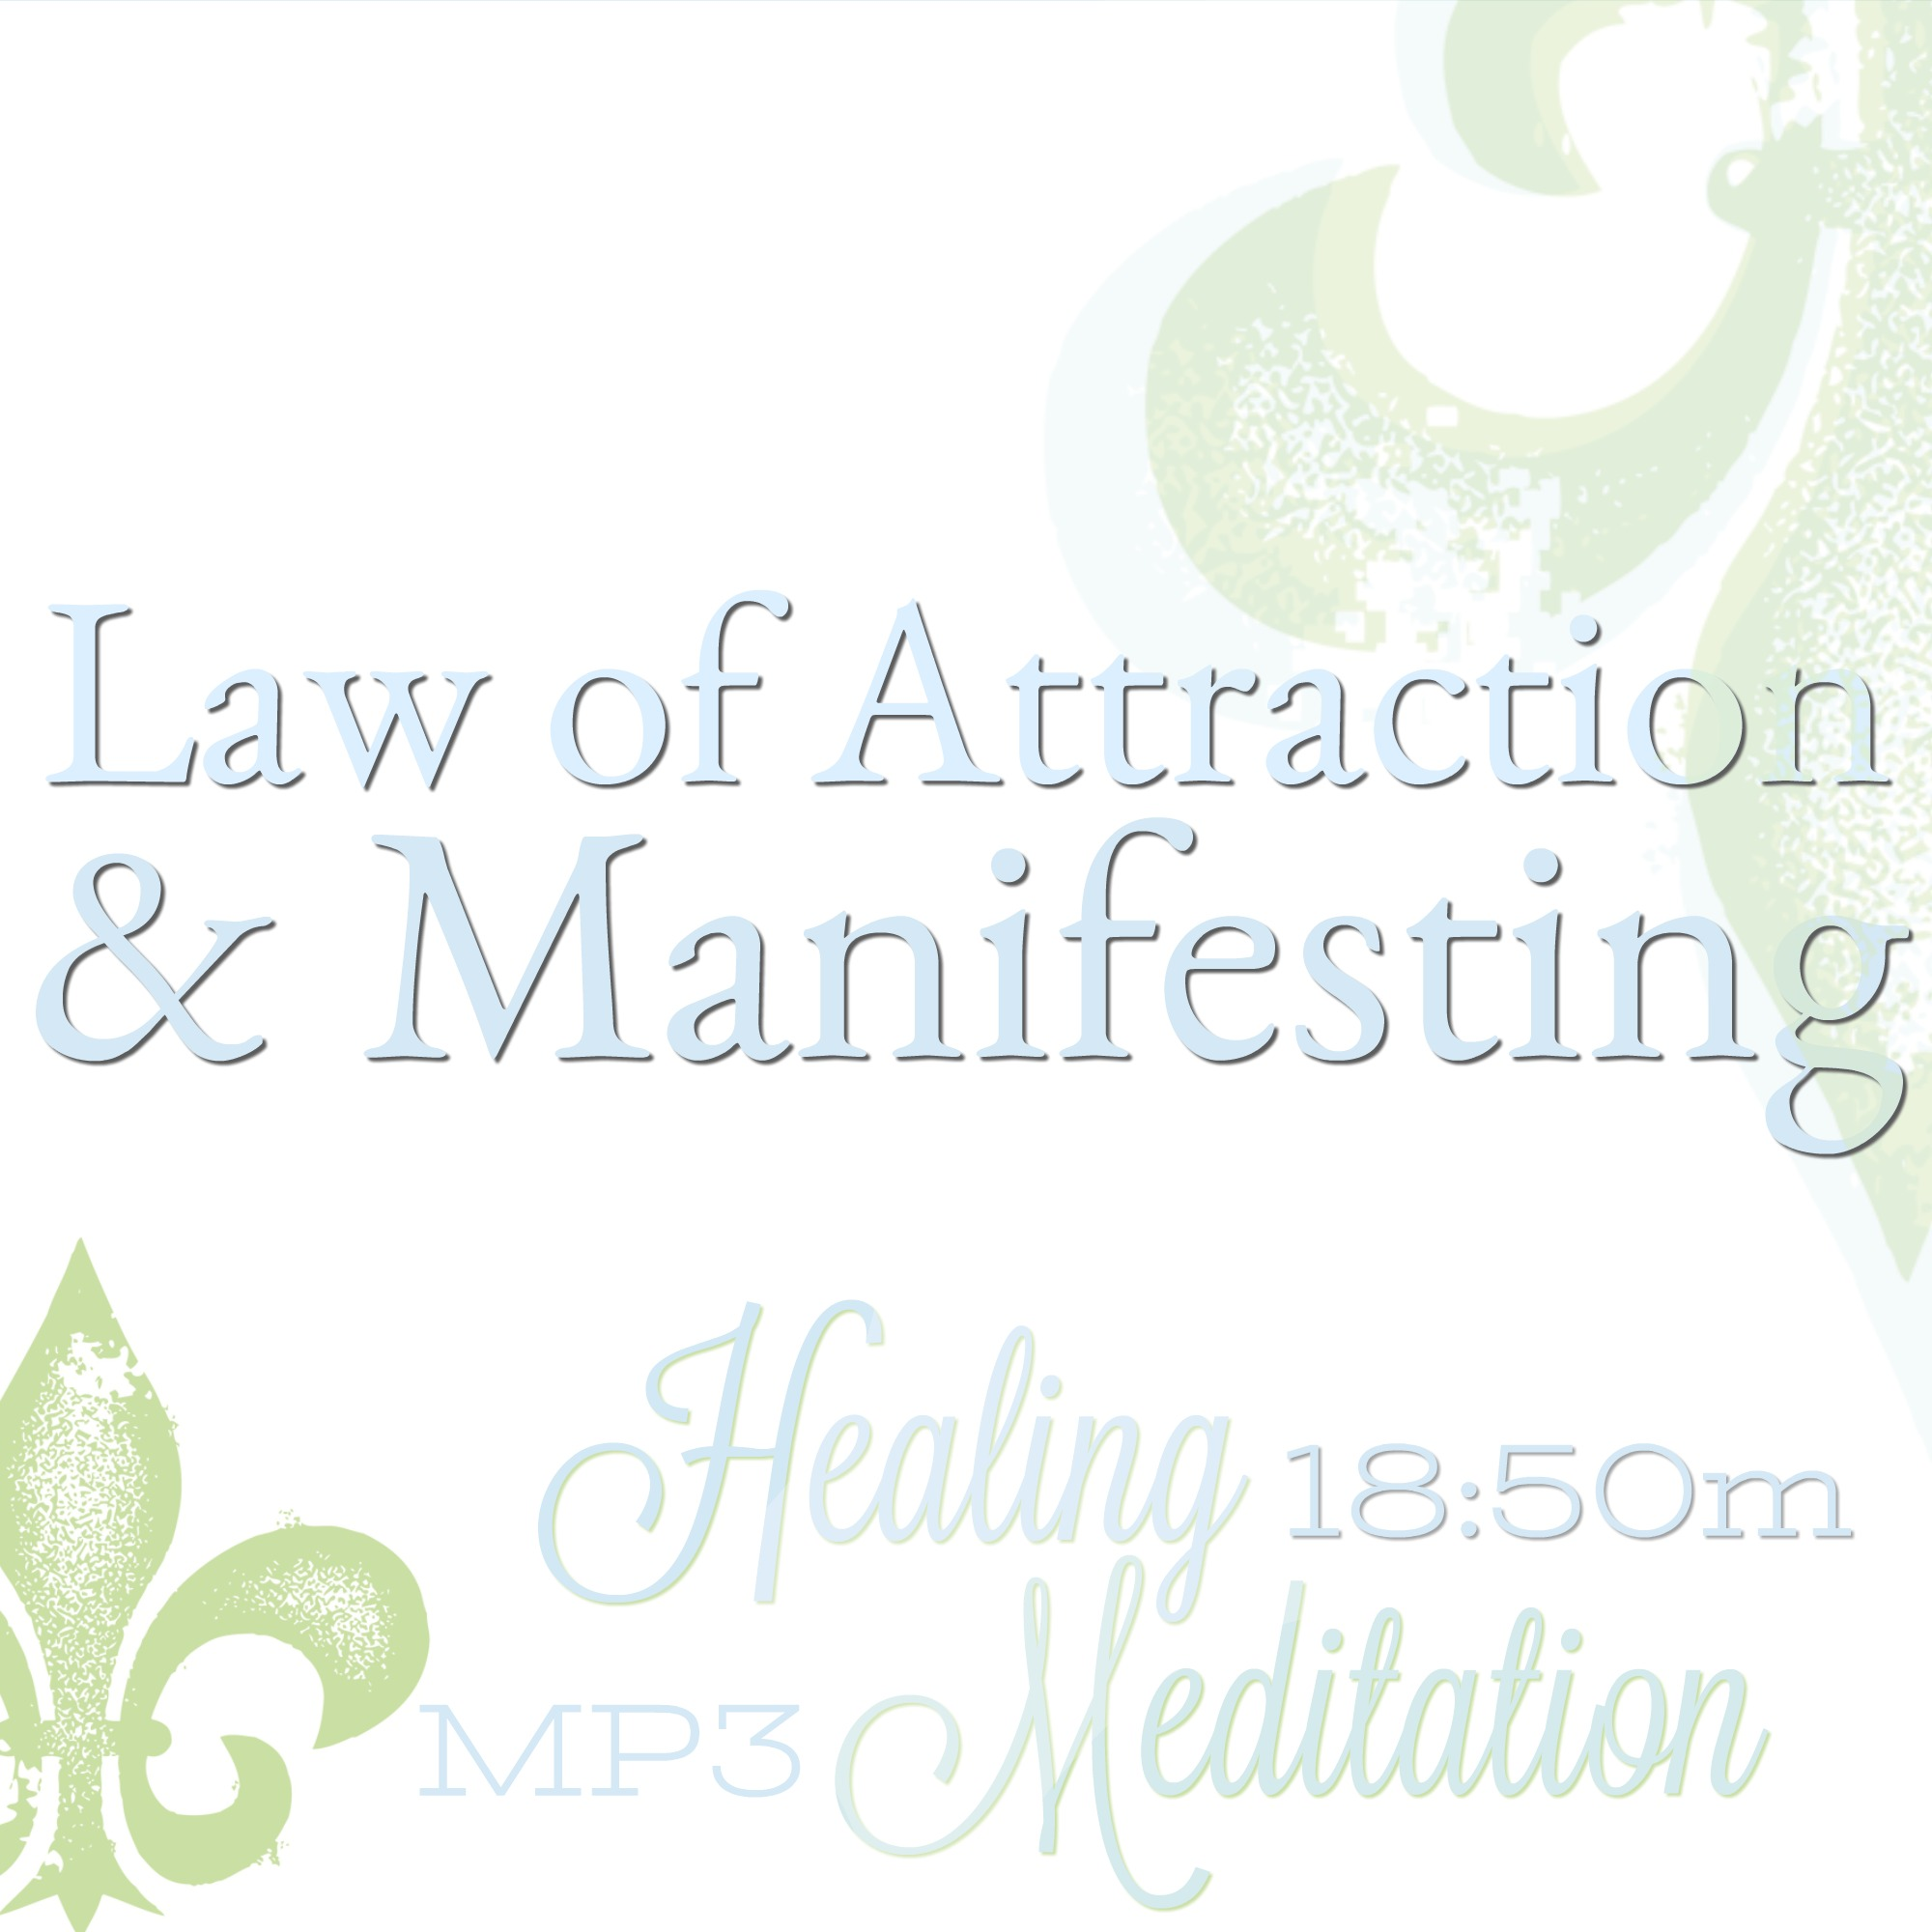 Manifesting and Law of Attraction, manifesting meditation, LOA meditation, reiki meditation